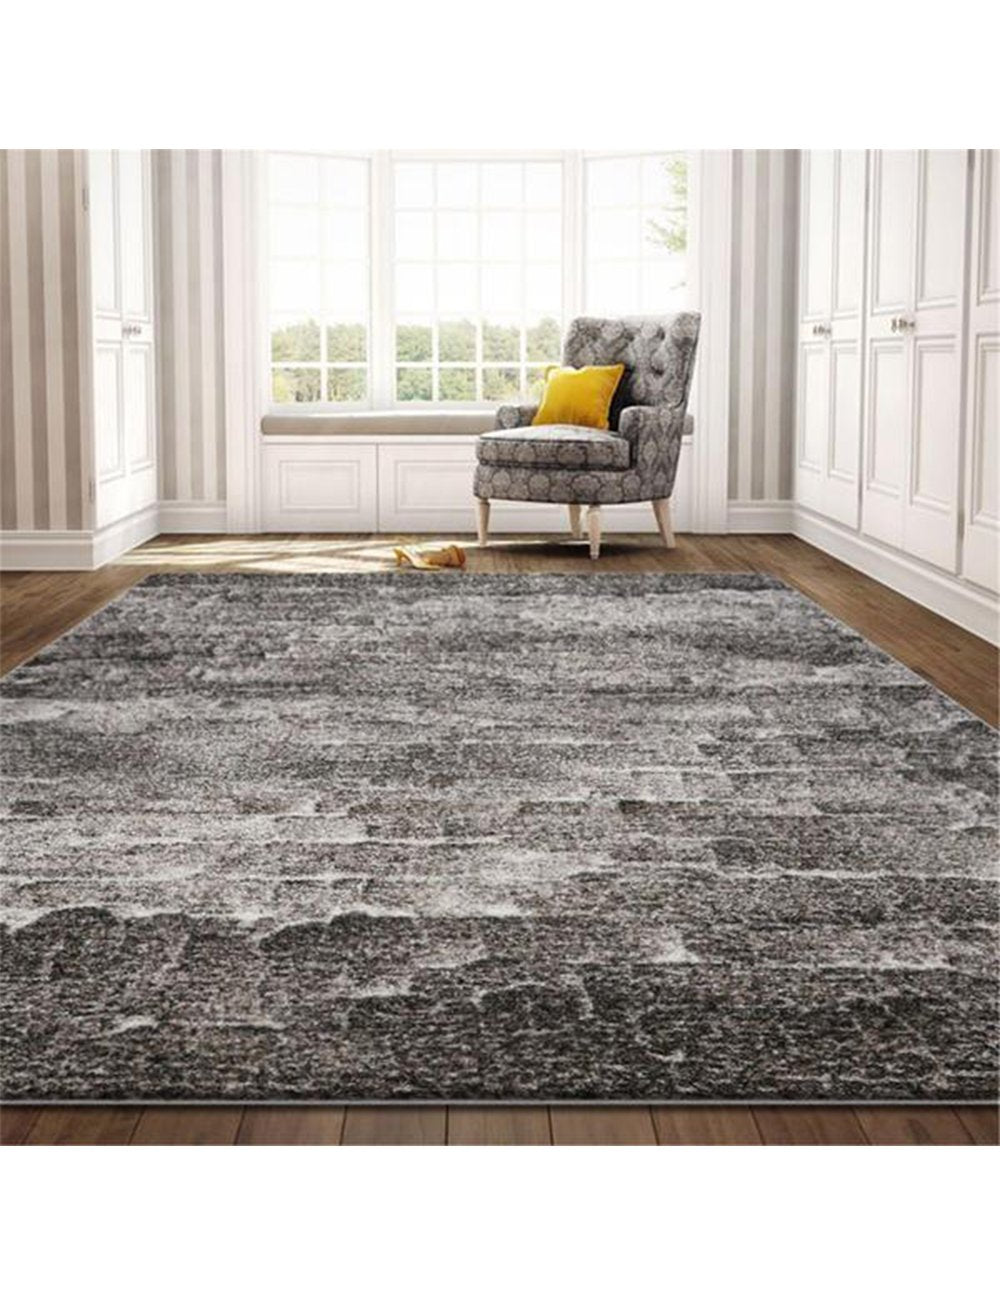 Opulence 707 Turkish Sand Rug - decorstore